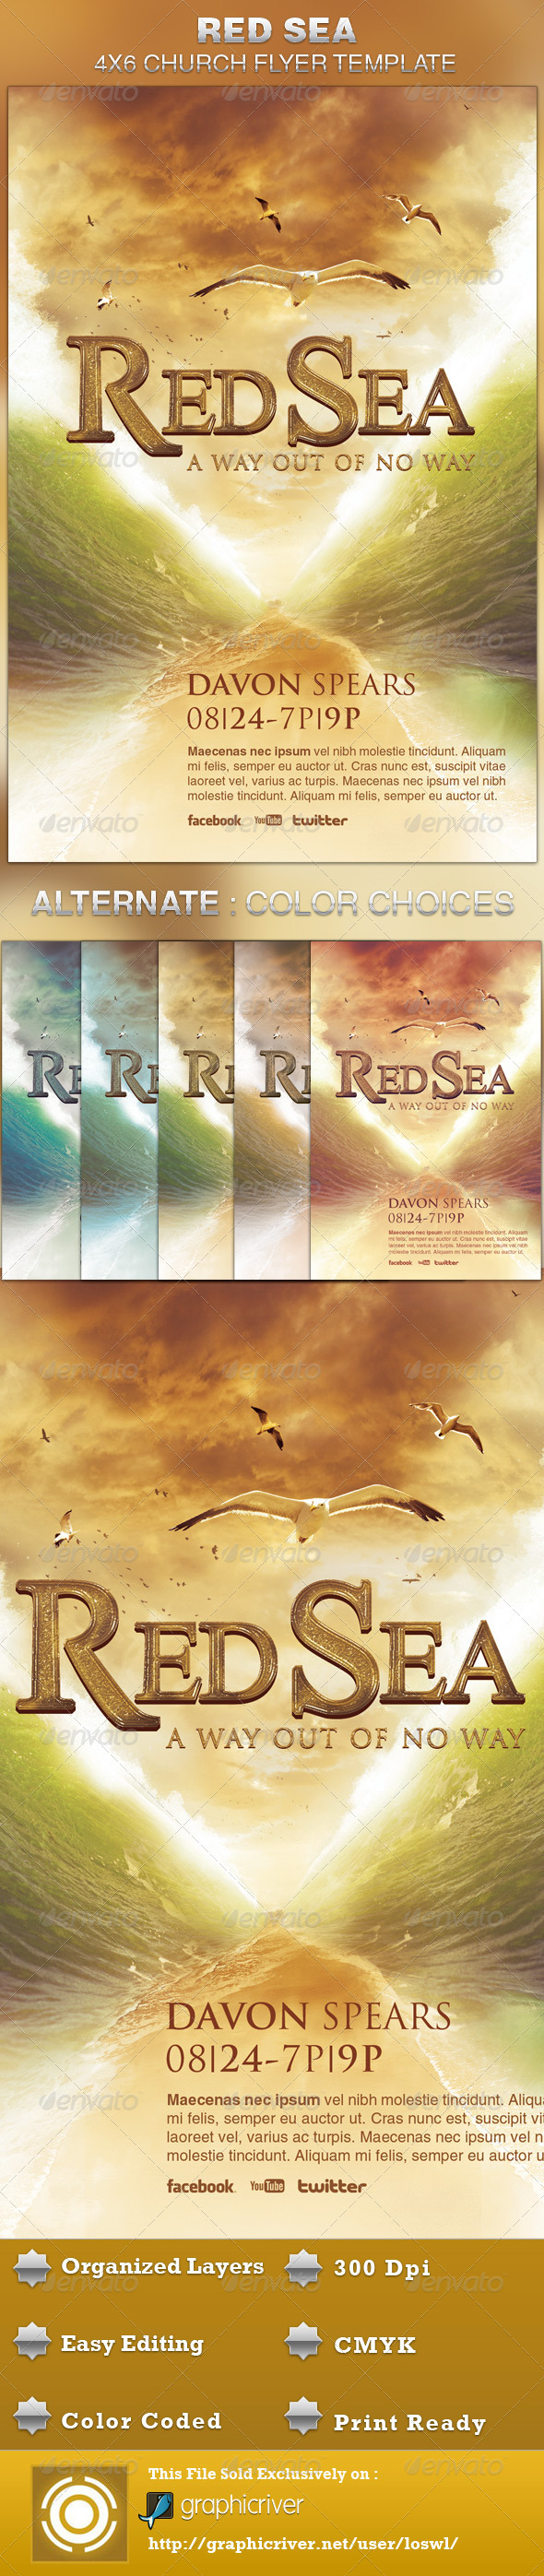 Red Sea Church Flyer Template - Church Flyers